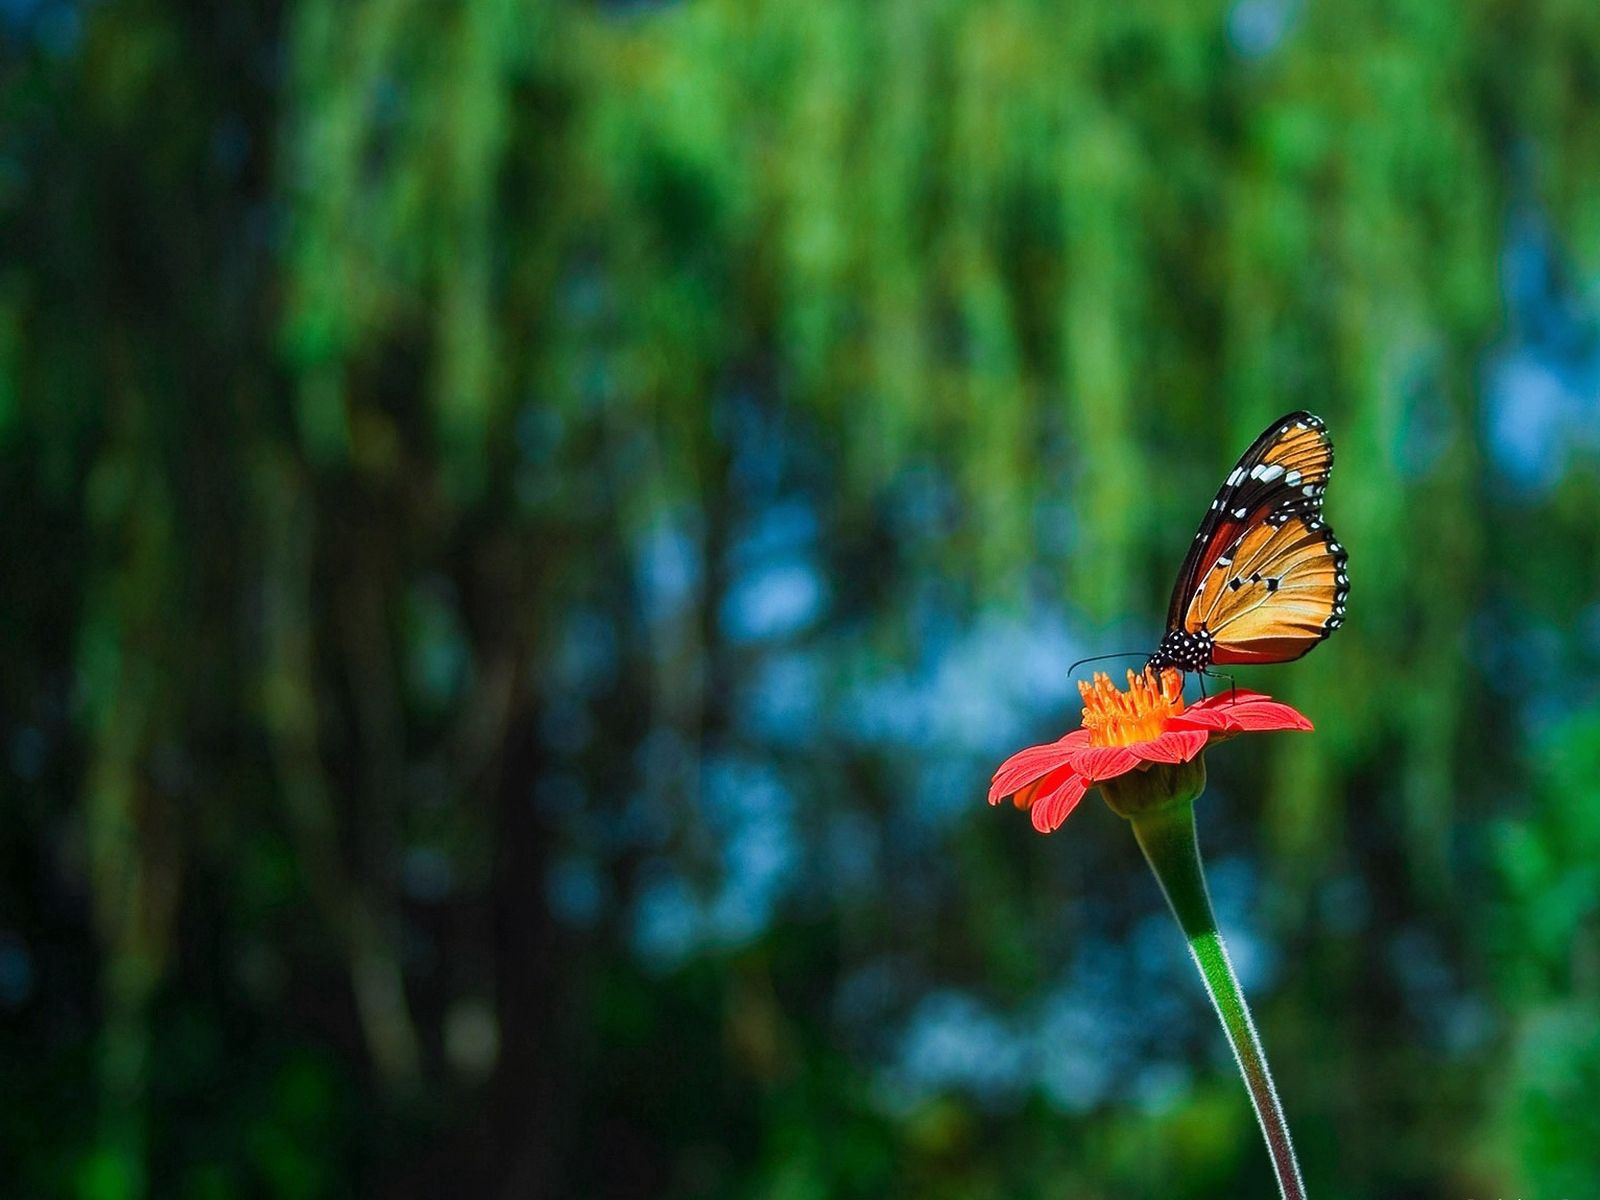 103435 download wallpaper Animals, Butterfly, Flower, Flight, Handsomely, It's Beautiful, Greased, Smeared screensavers and pictures for free